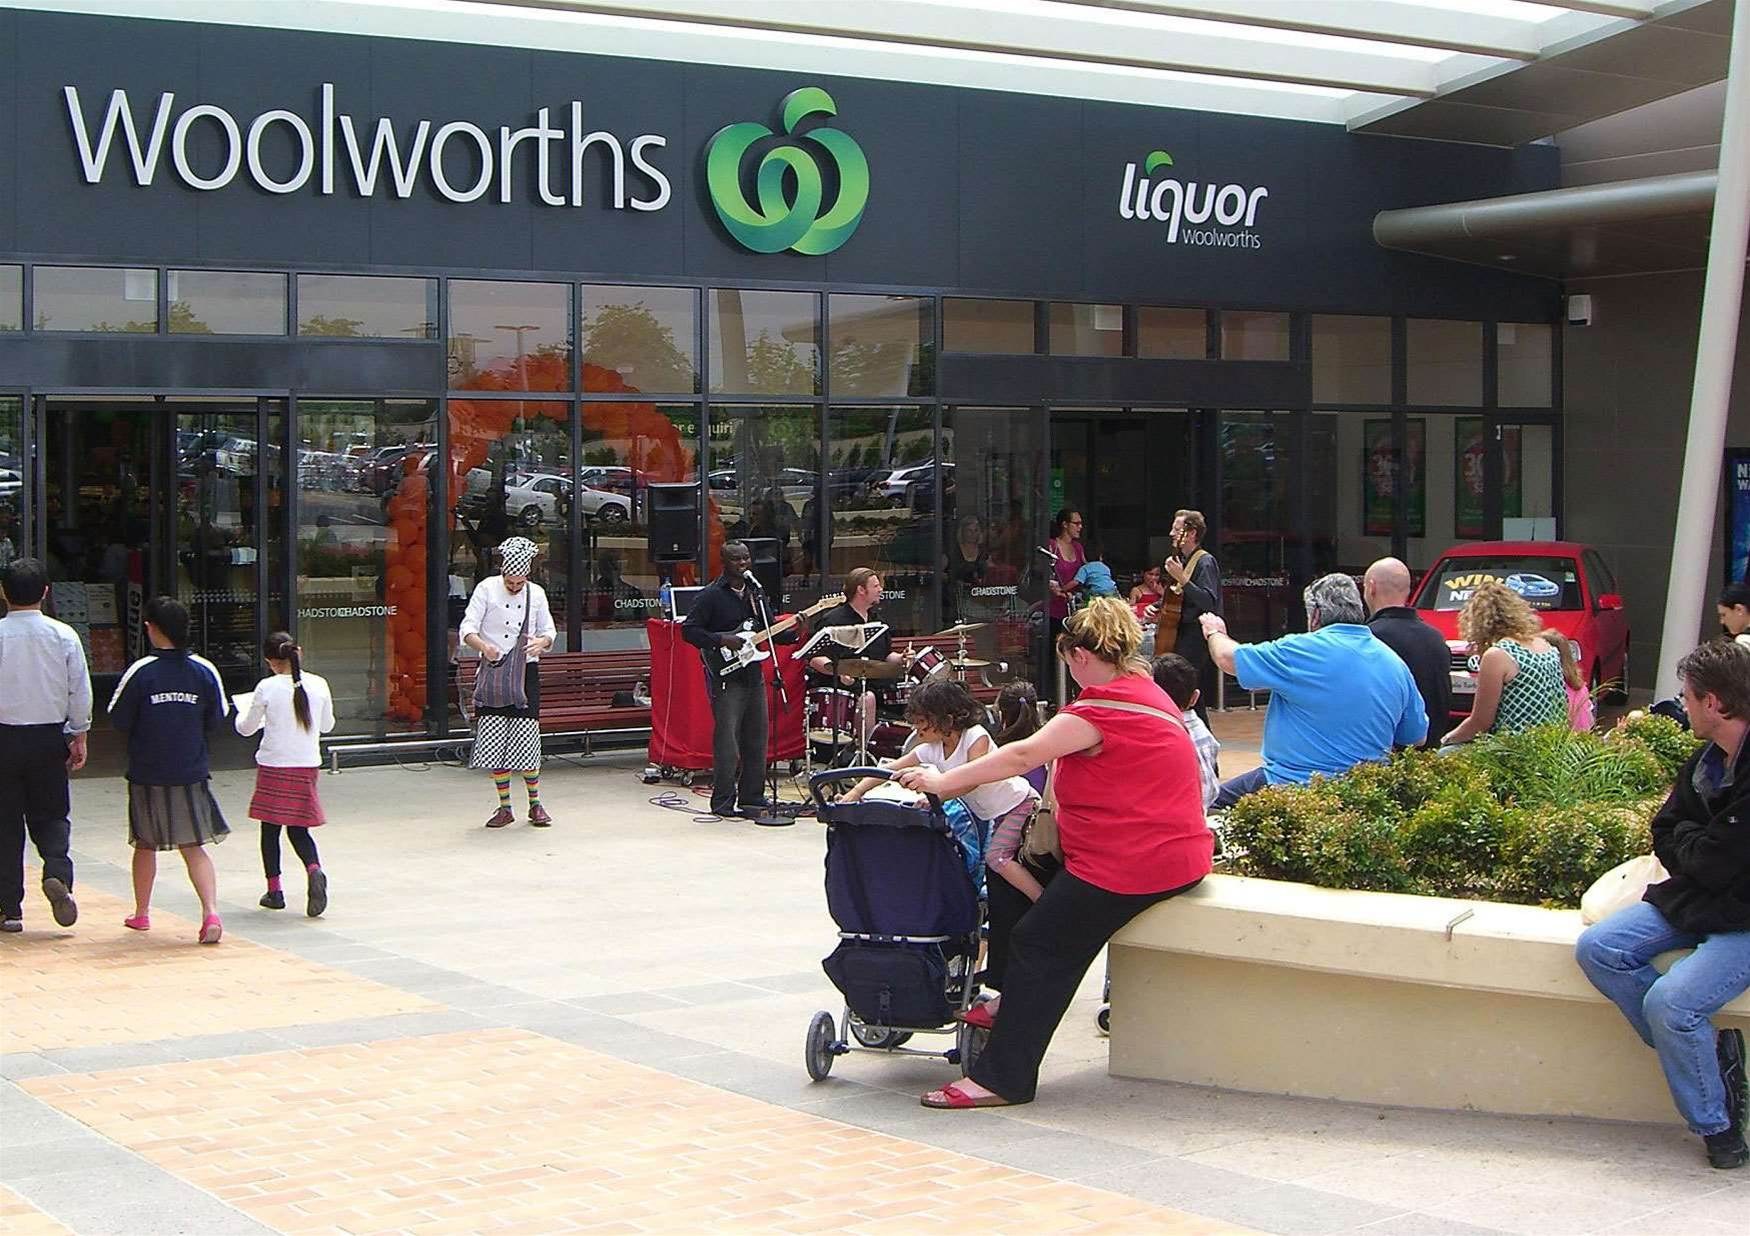 Woolworths outranks Wesfarmers in supply chain comparison